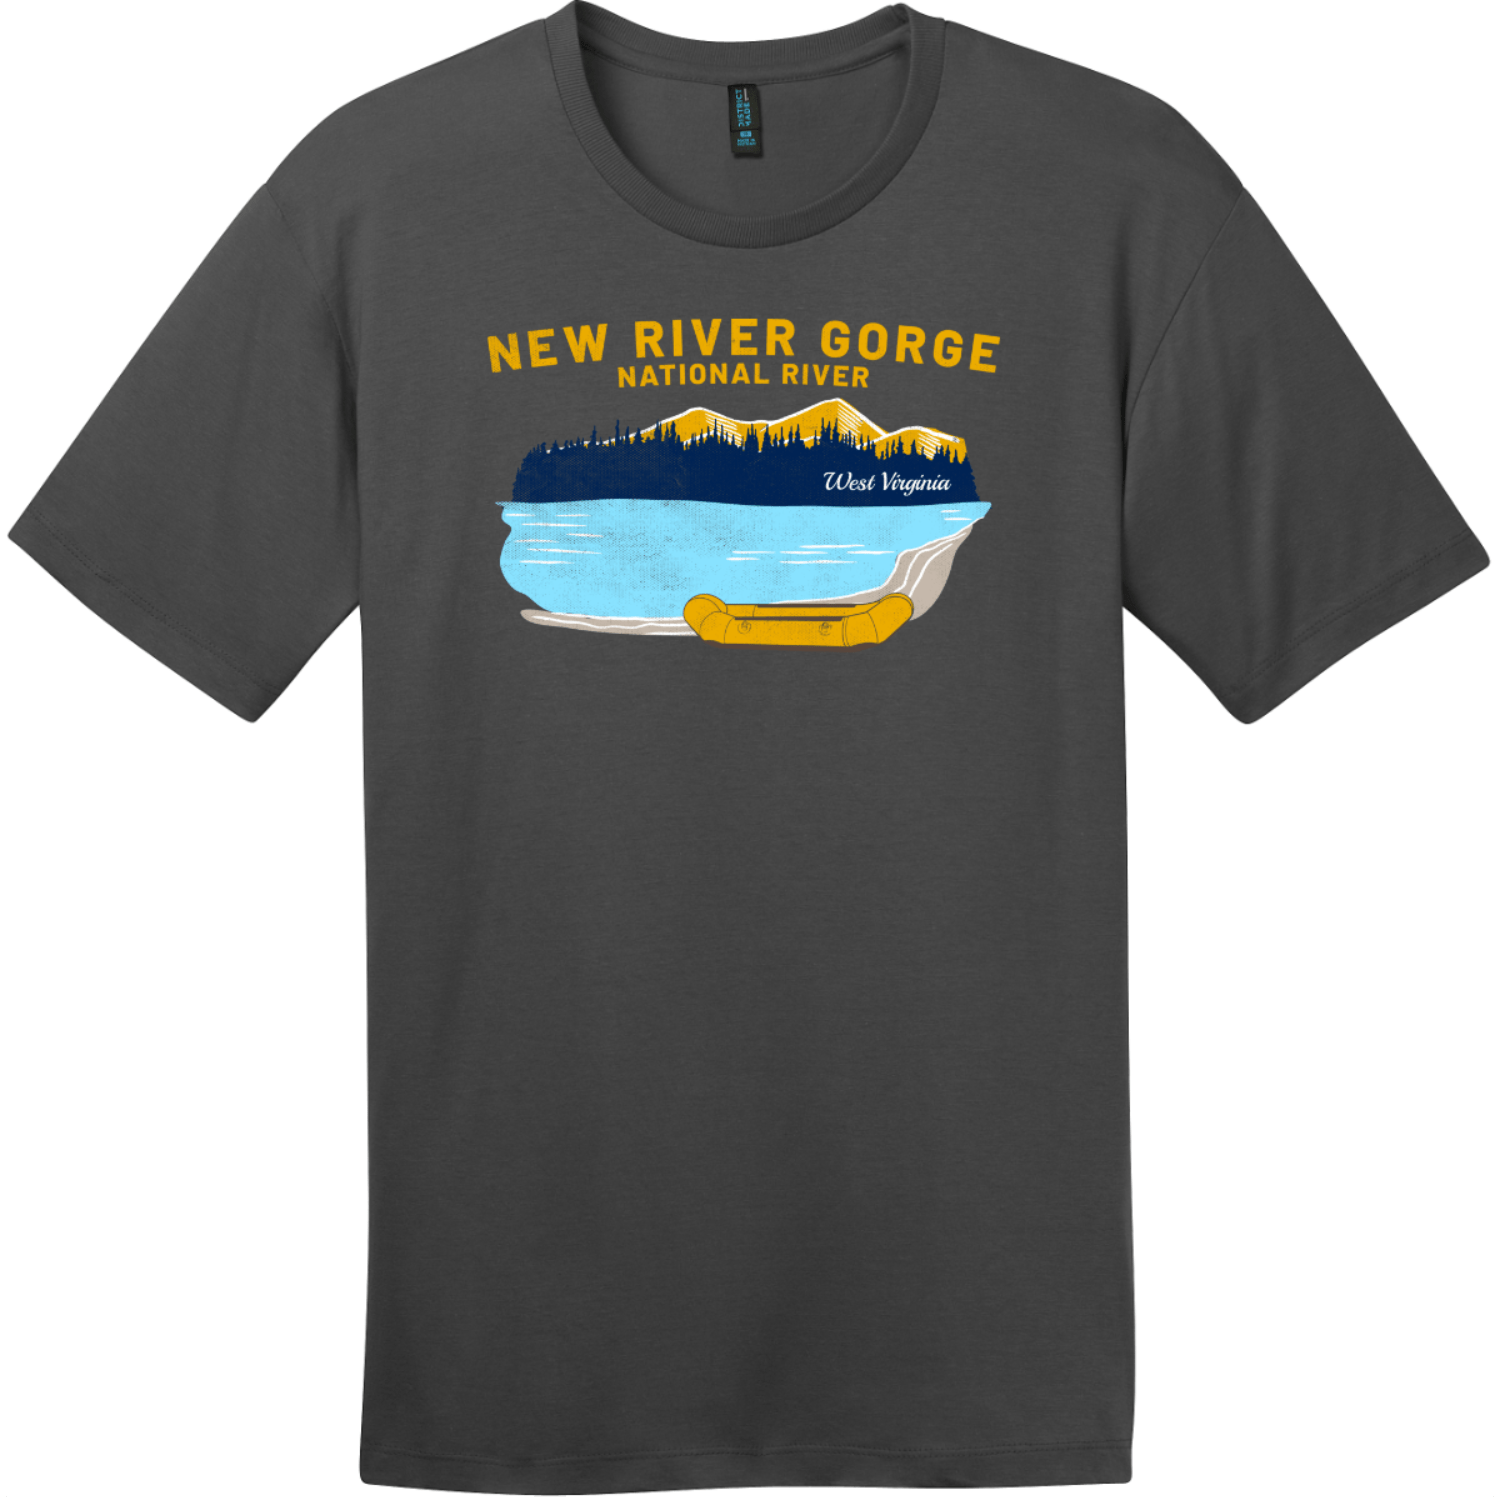 New River Gorge Rafting T-Shirt Charcoal District Perfect Weight Tee DT104